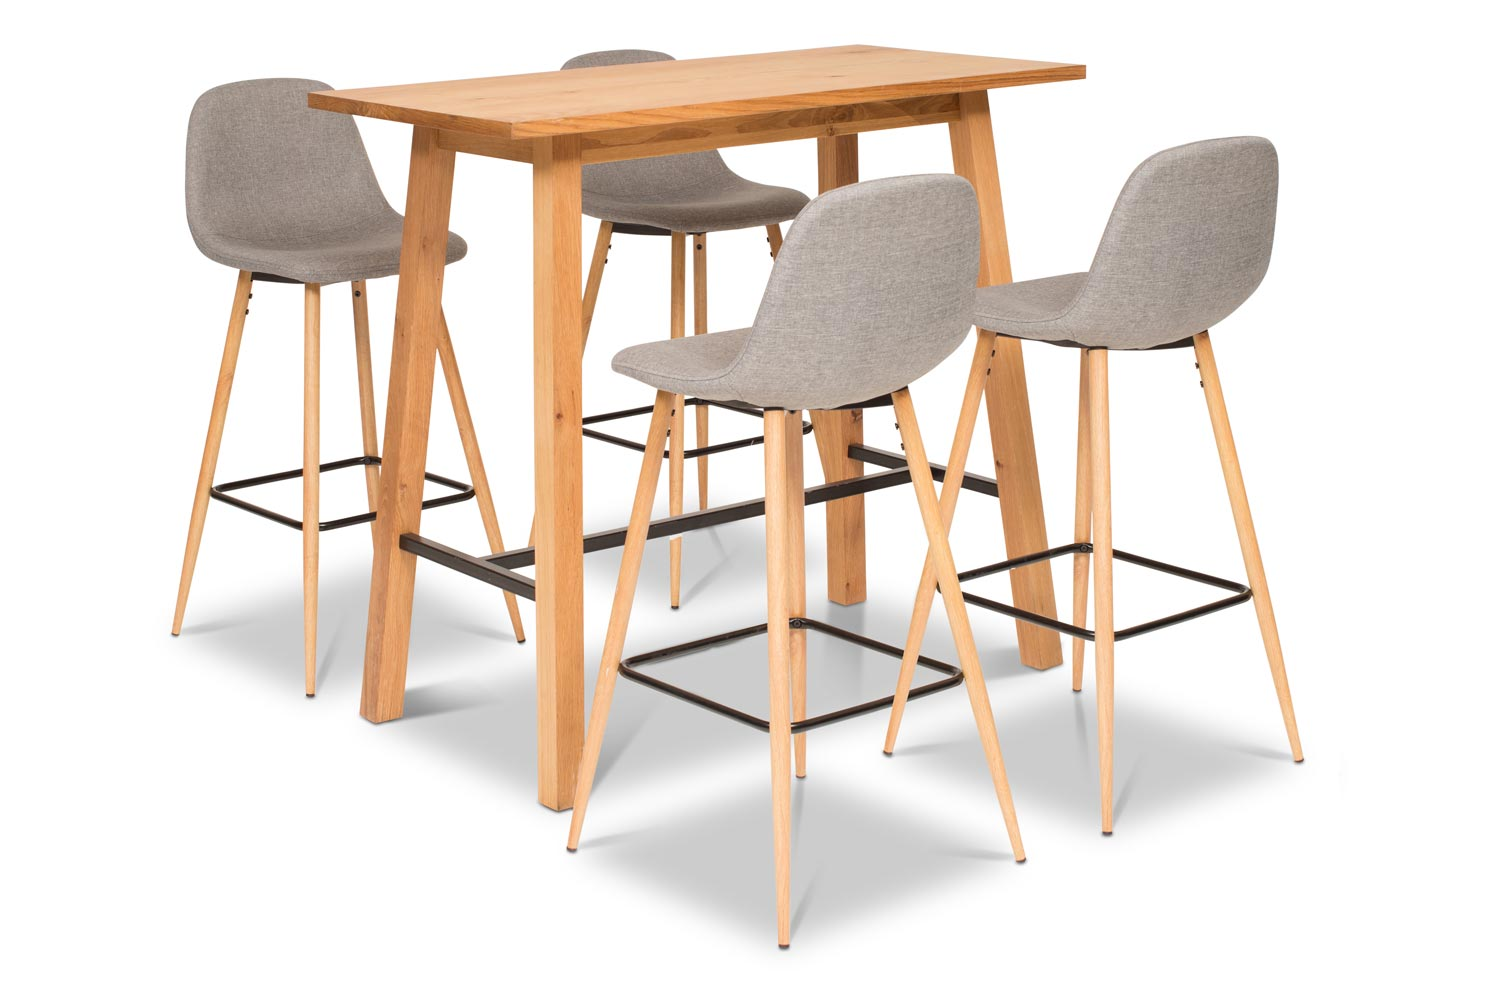 Table And Bar Stools Stockholm Bar Table With 4 Wilma Bar Stools